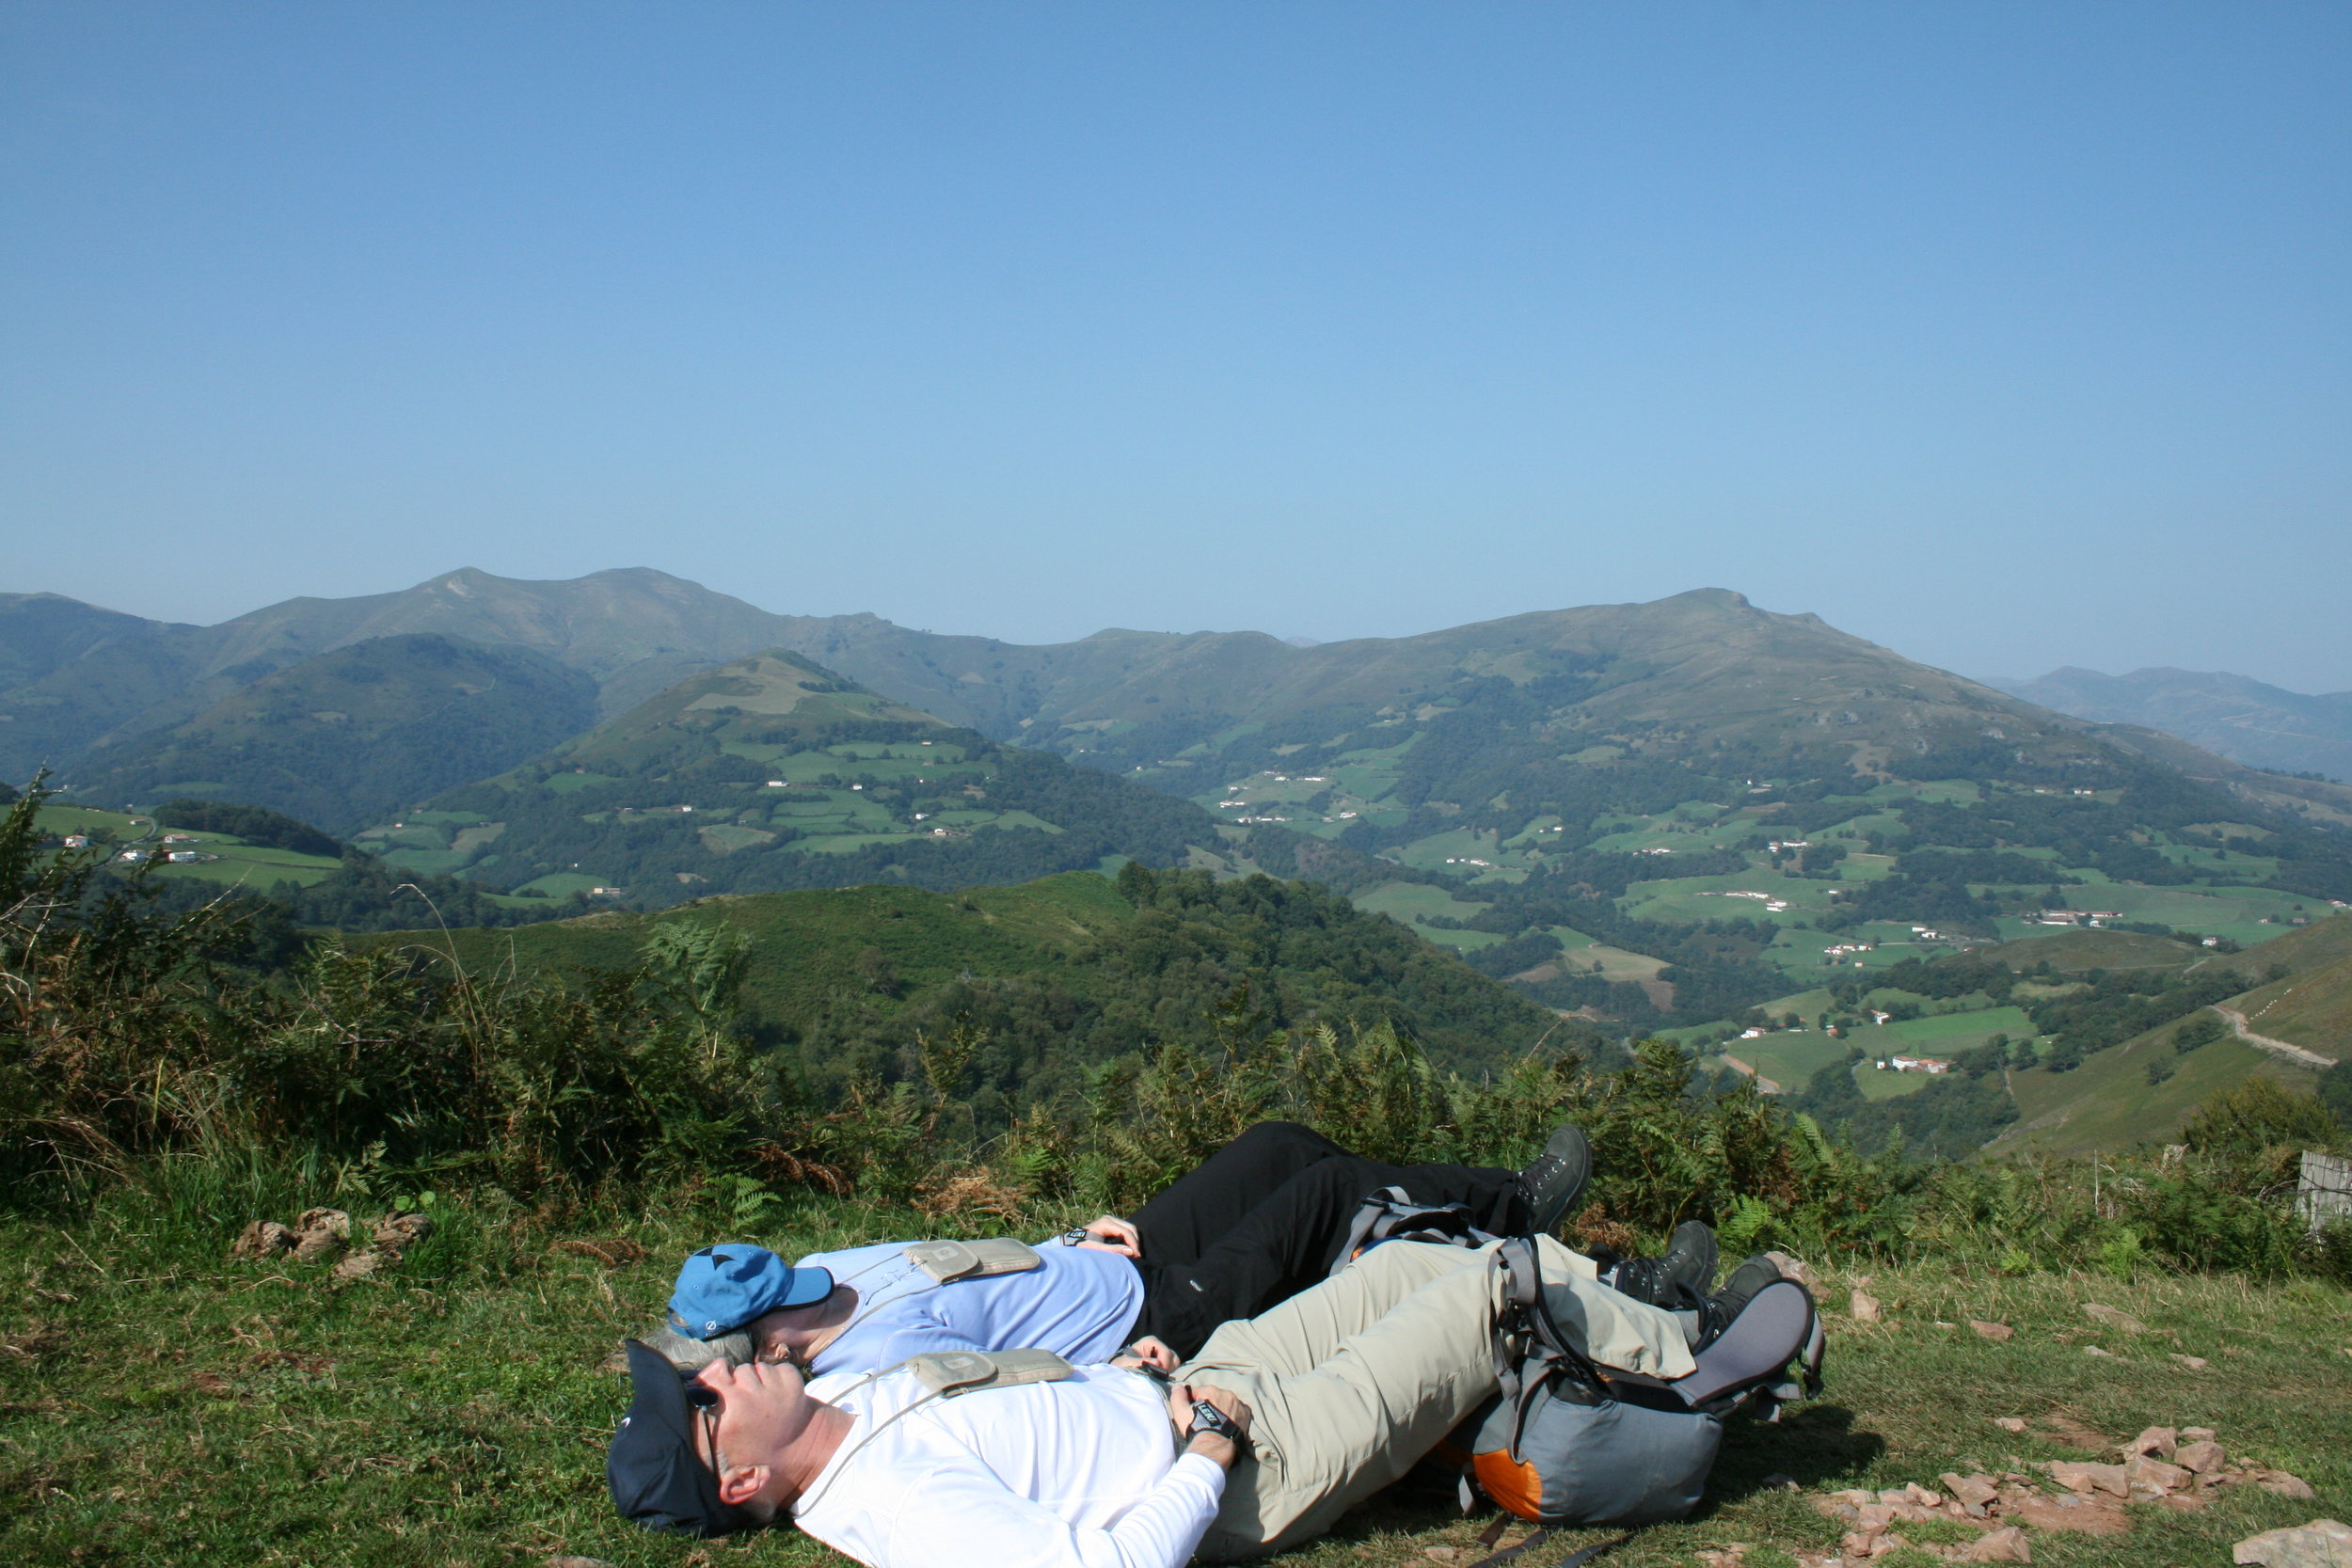 Taking a break going over the Pyrenees was good advice for these two weary pilgrims.